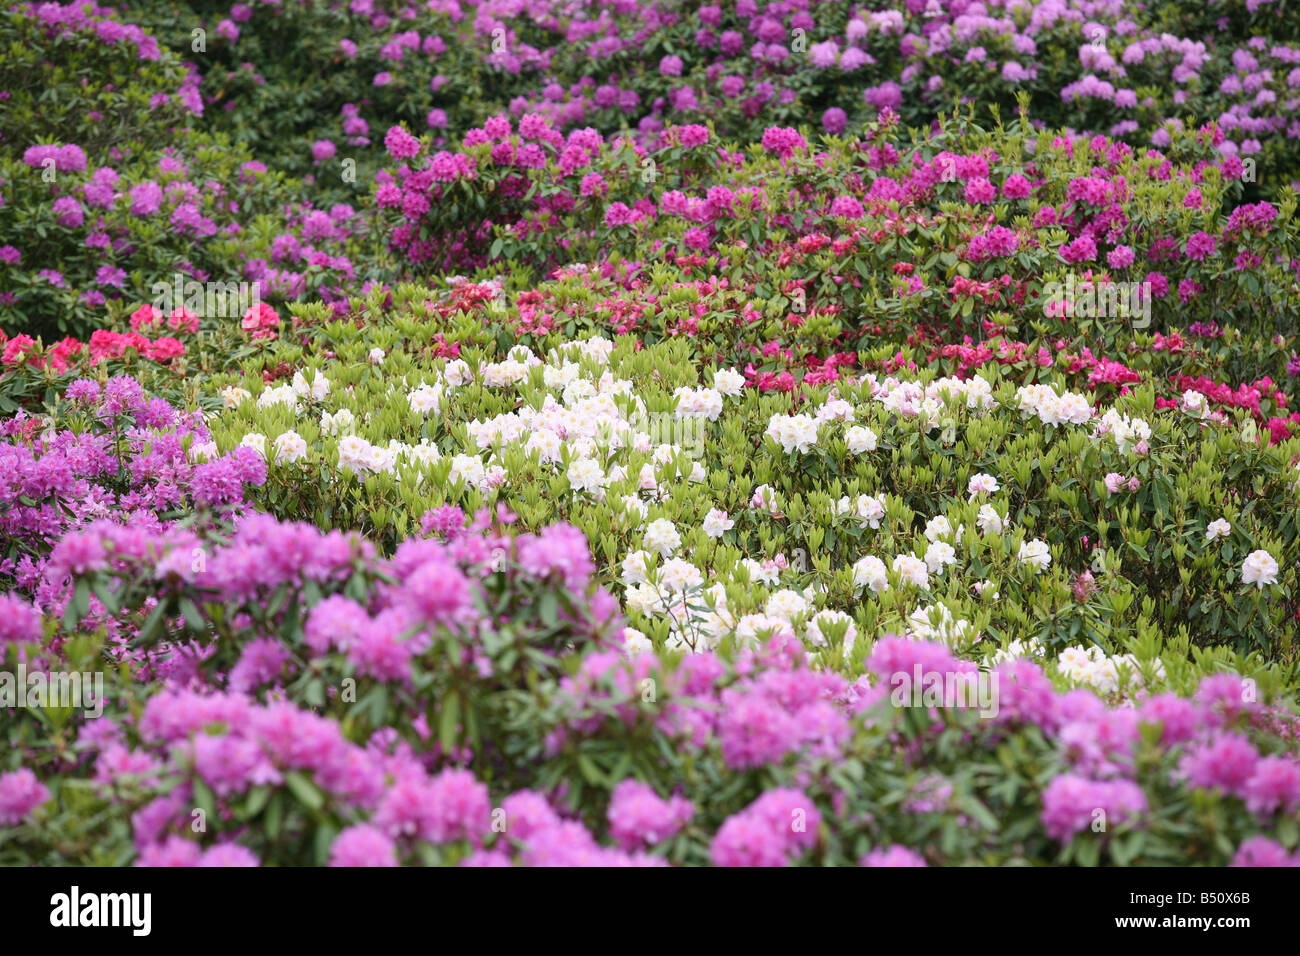 Canopy of rhododendron flowers, Sheringham Park, Norfolk, England - Stock Image